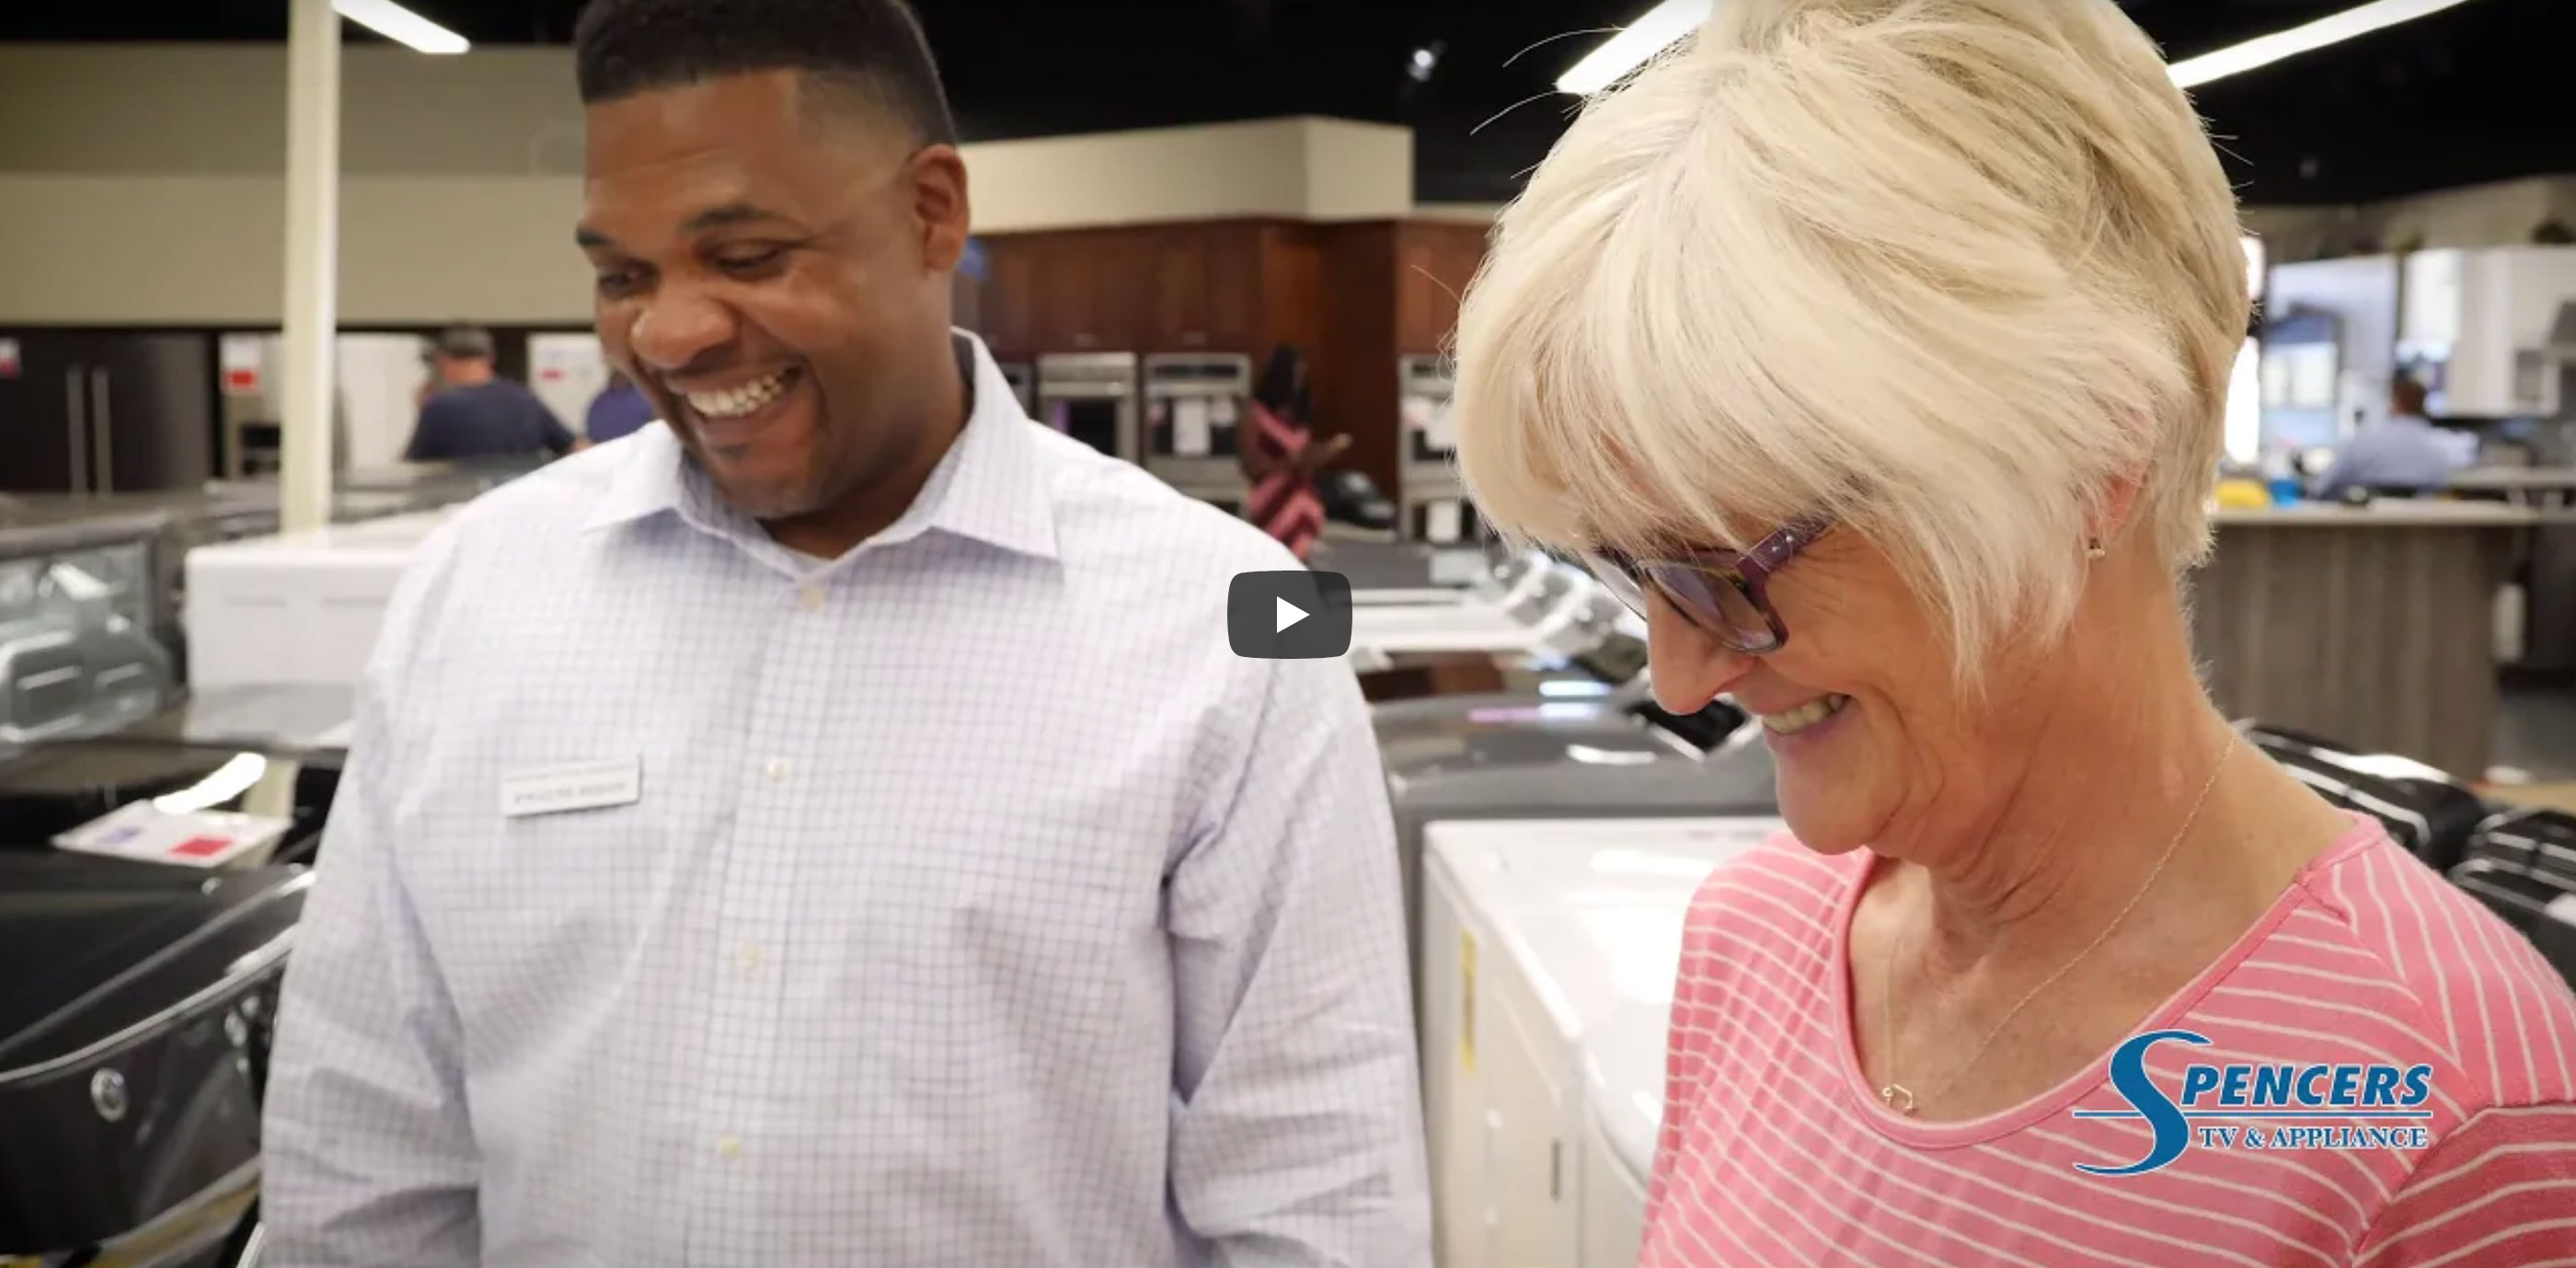 Watch the story about how Spencer's TV & Appliance has been serving Phoenix for over 47 years.